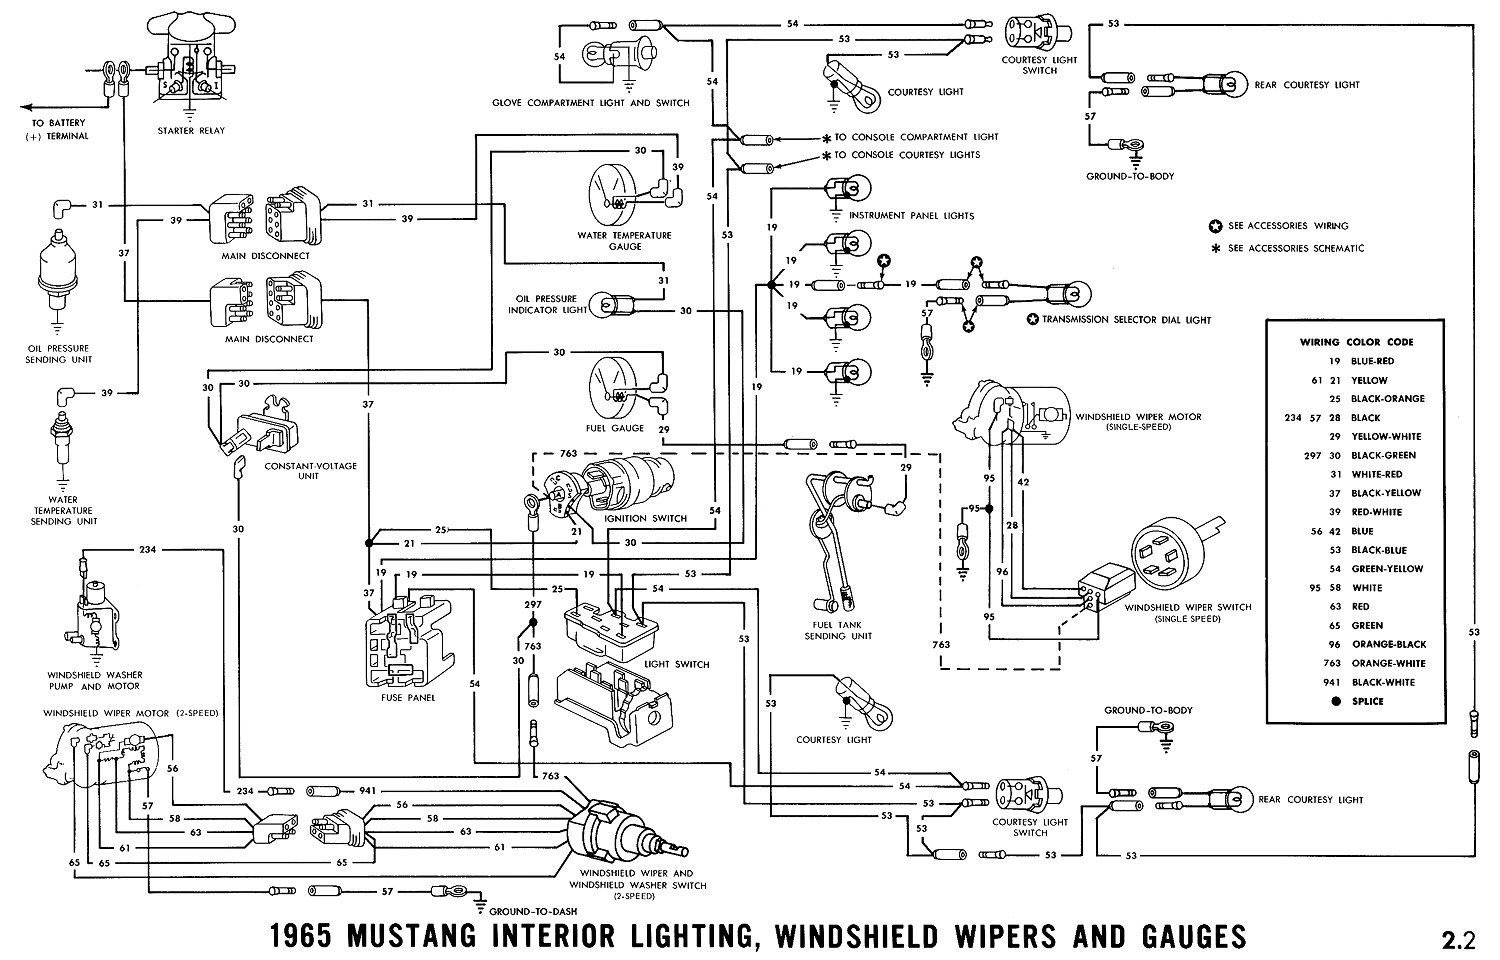 1965g 1965 mustang wiring diagrams average joe restoration 1965 mustang turn signal wiring diagram at bakdesigns.co